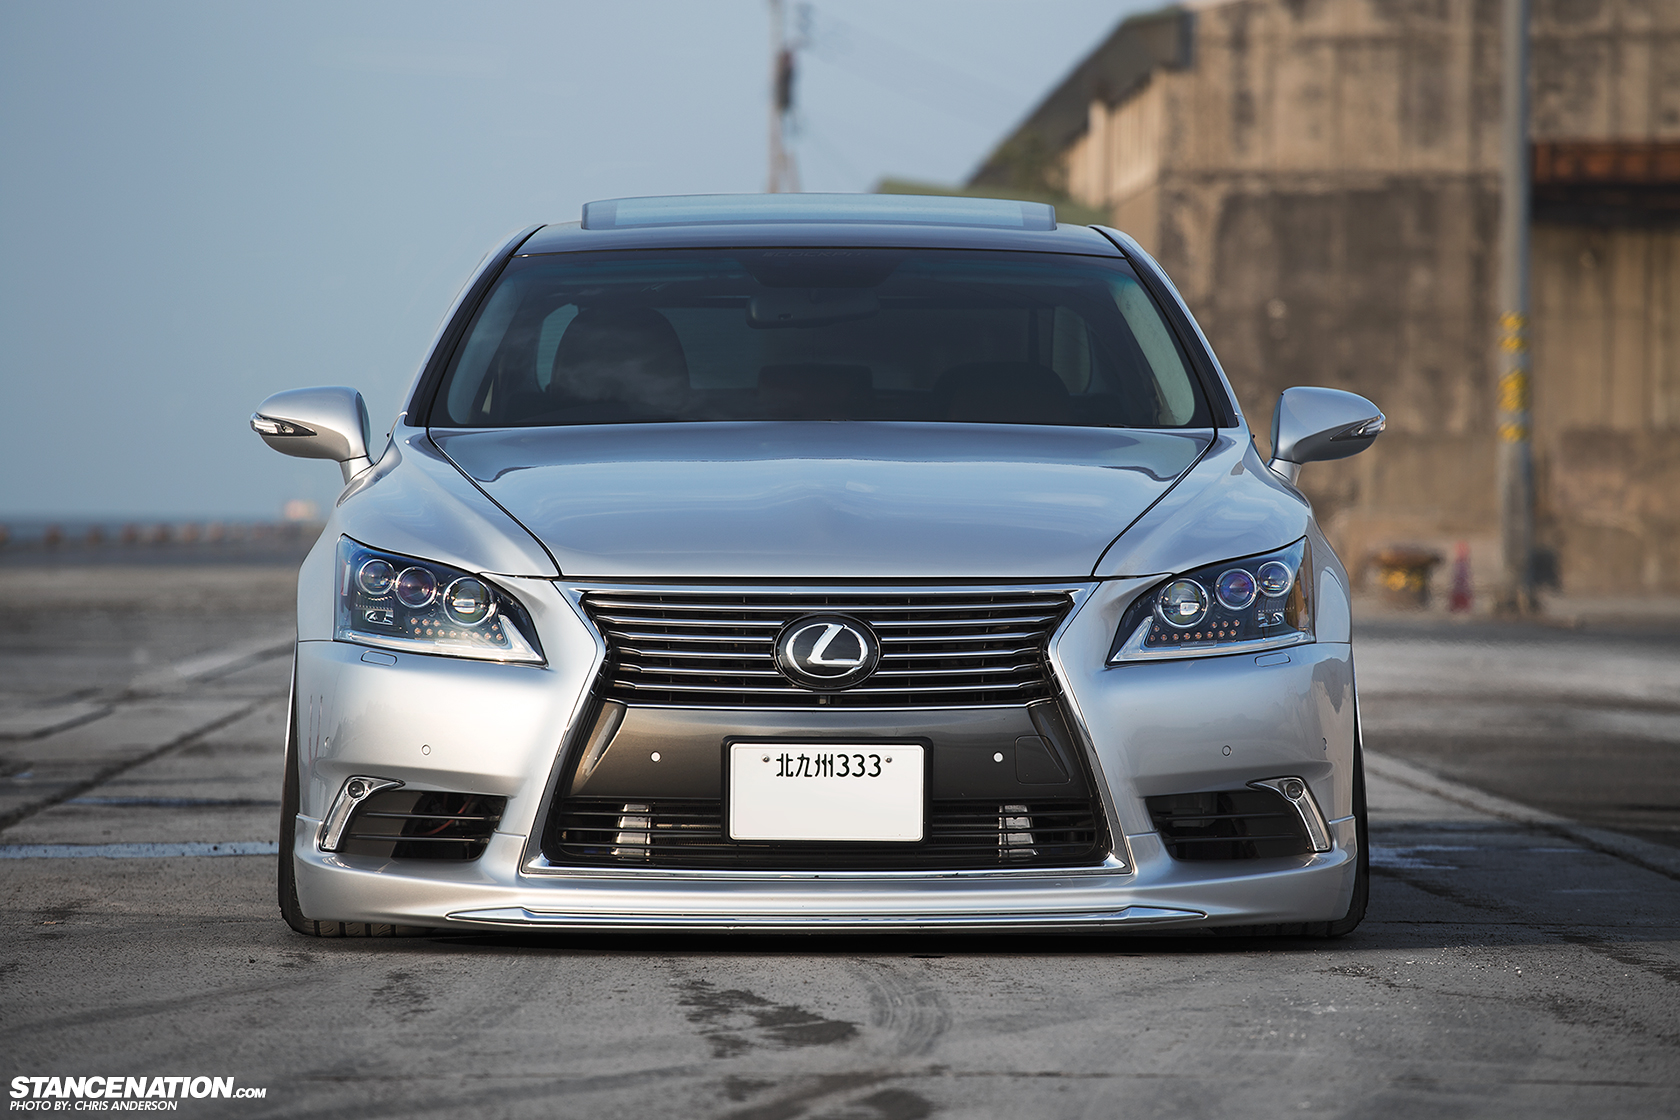 Check Out This Vip Lexus Ls Twins Videophoto Gallery